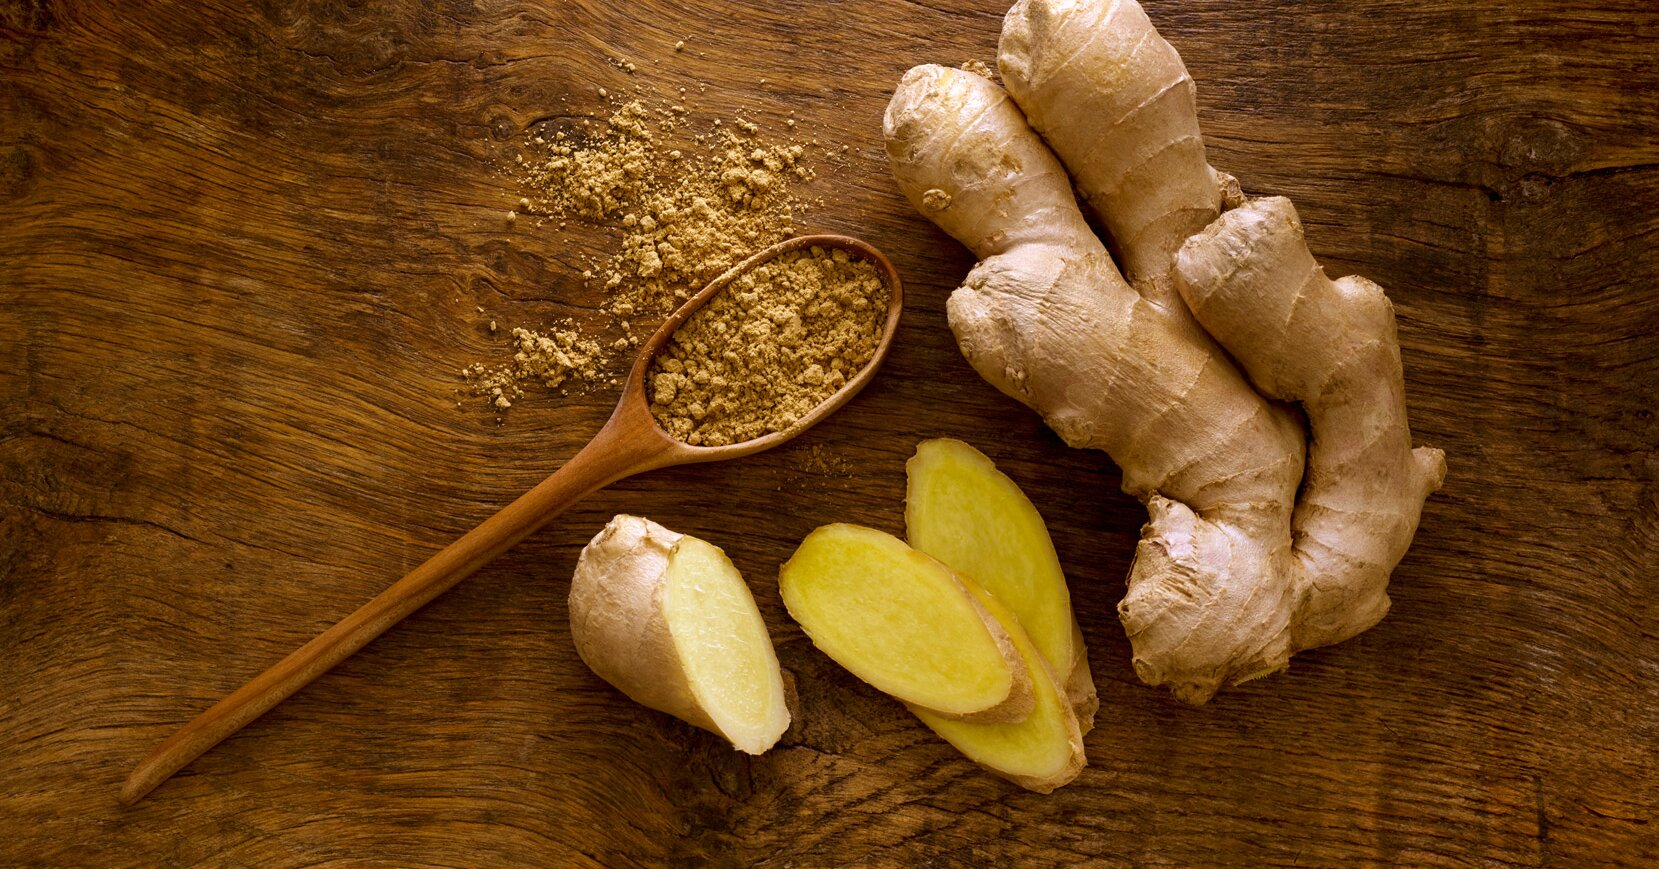 The Health Benefits Associated with Eating and Drinking Ginger